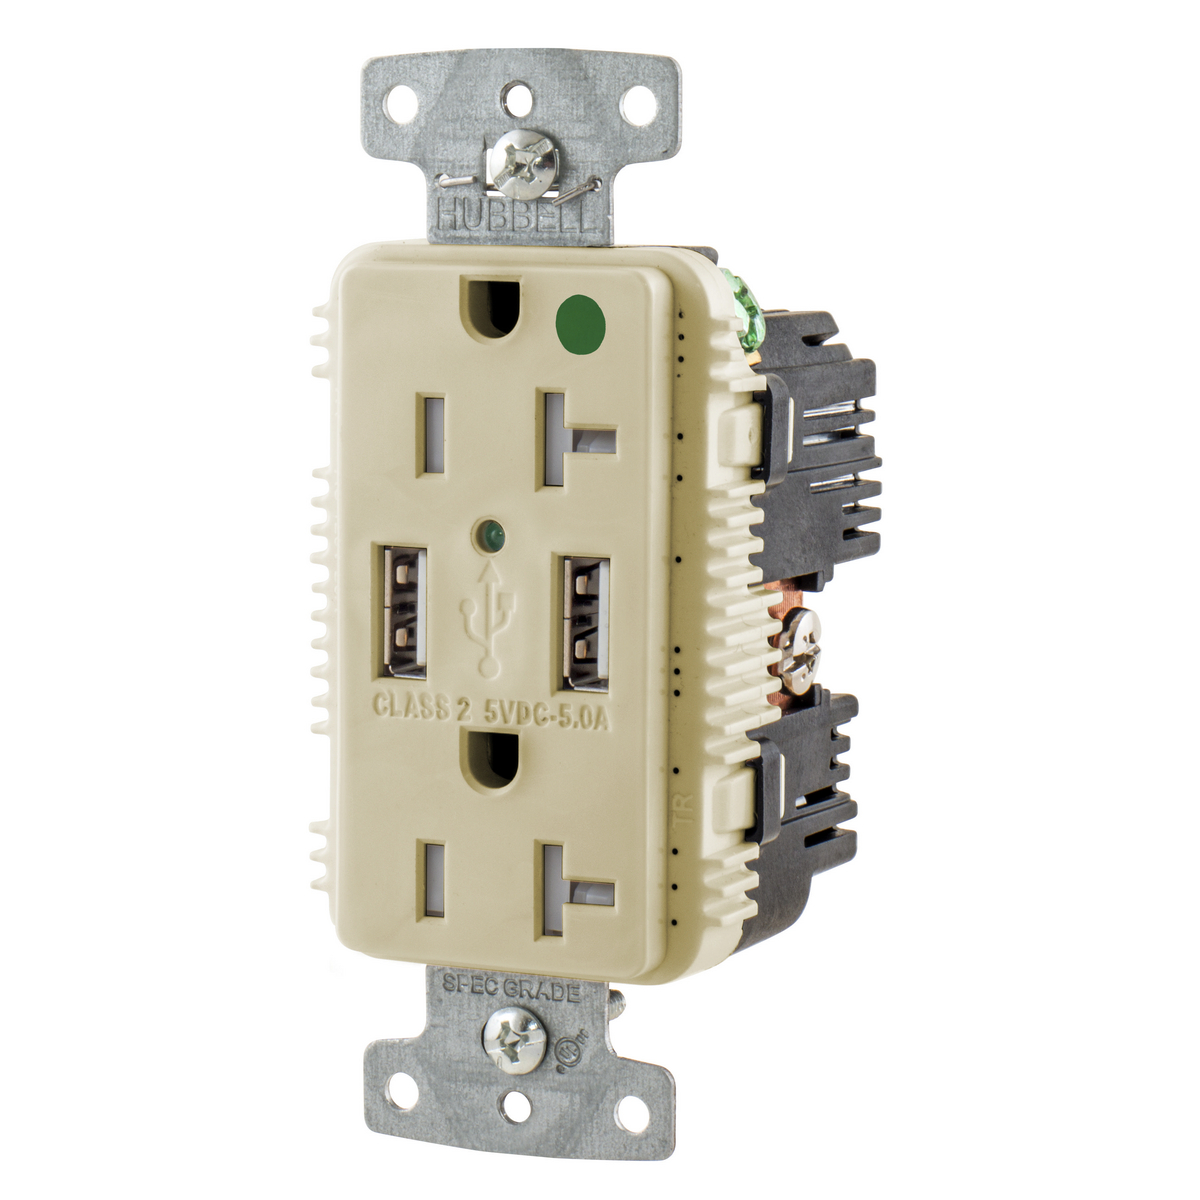 Combination Devices United Electric Leviton Light Almond Decora Triple Rocker Wall Switch Triplex Hubusb8300a5i Rcpt Hg Dup 20a 125v 5a 5v Usb Port A I Usb8300a5i Hubbell